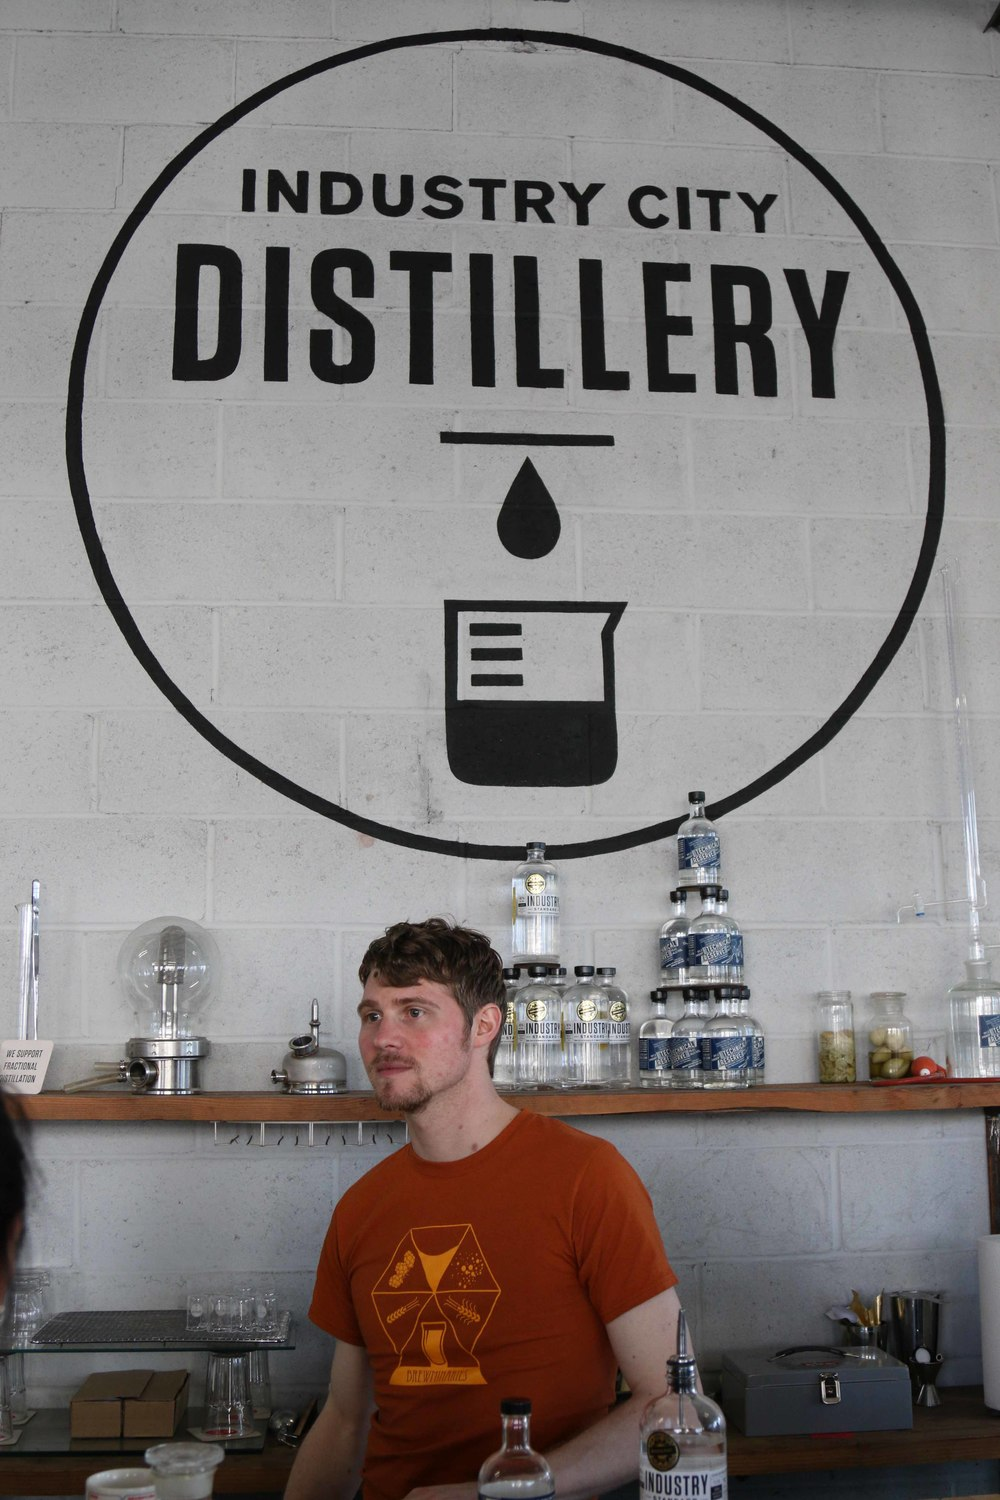 Meet David of Industry City Distillery